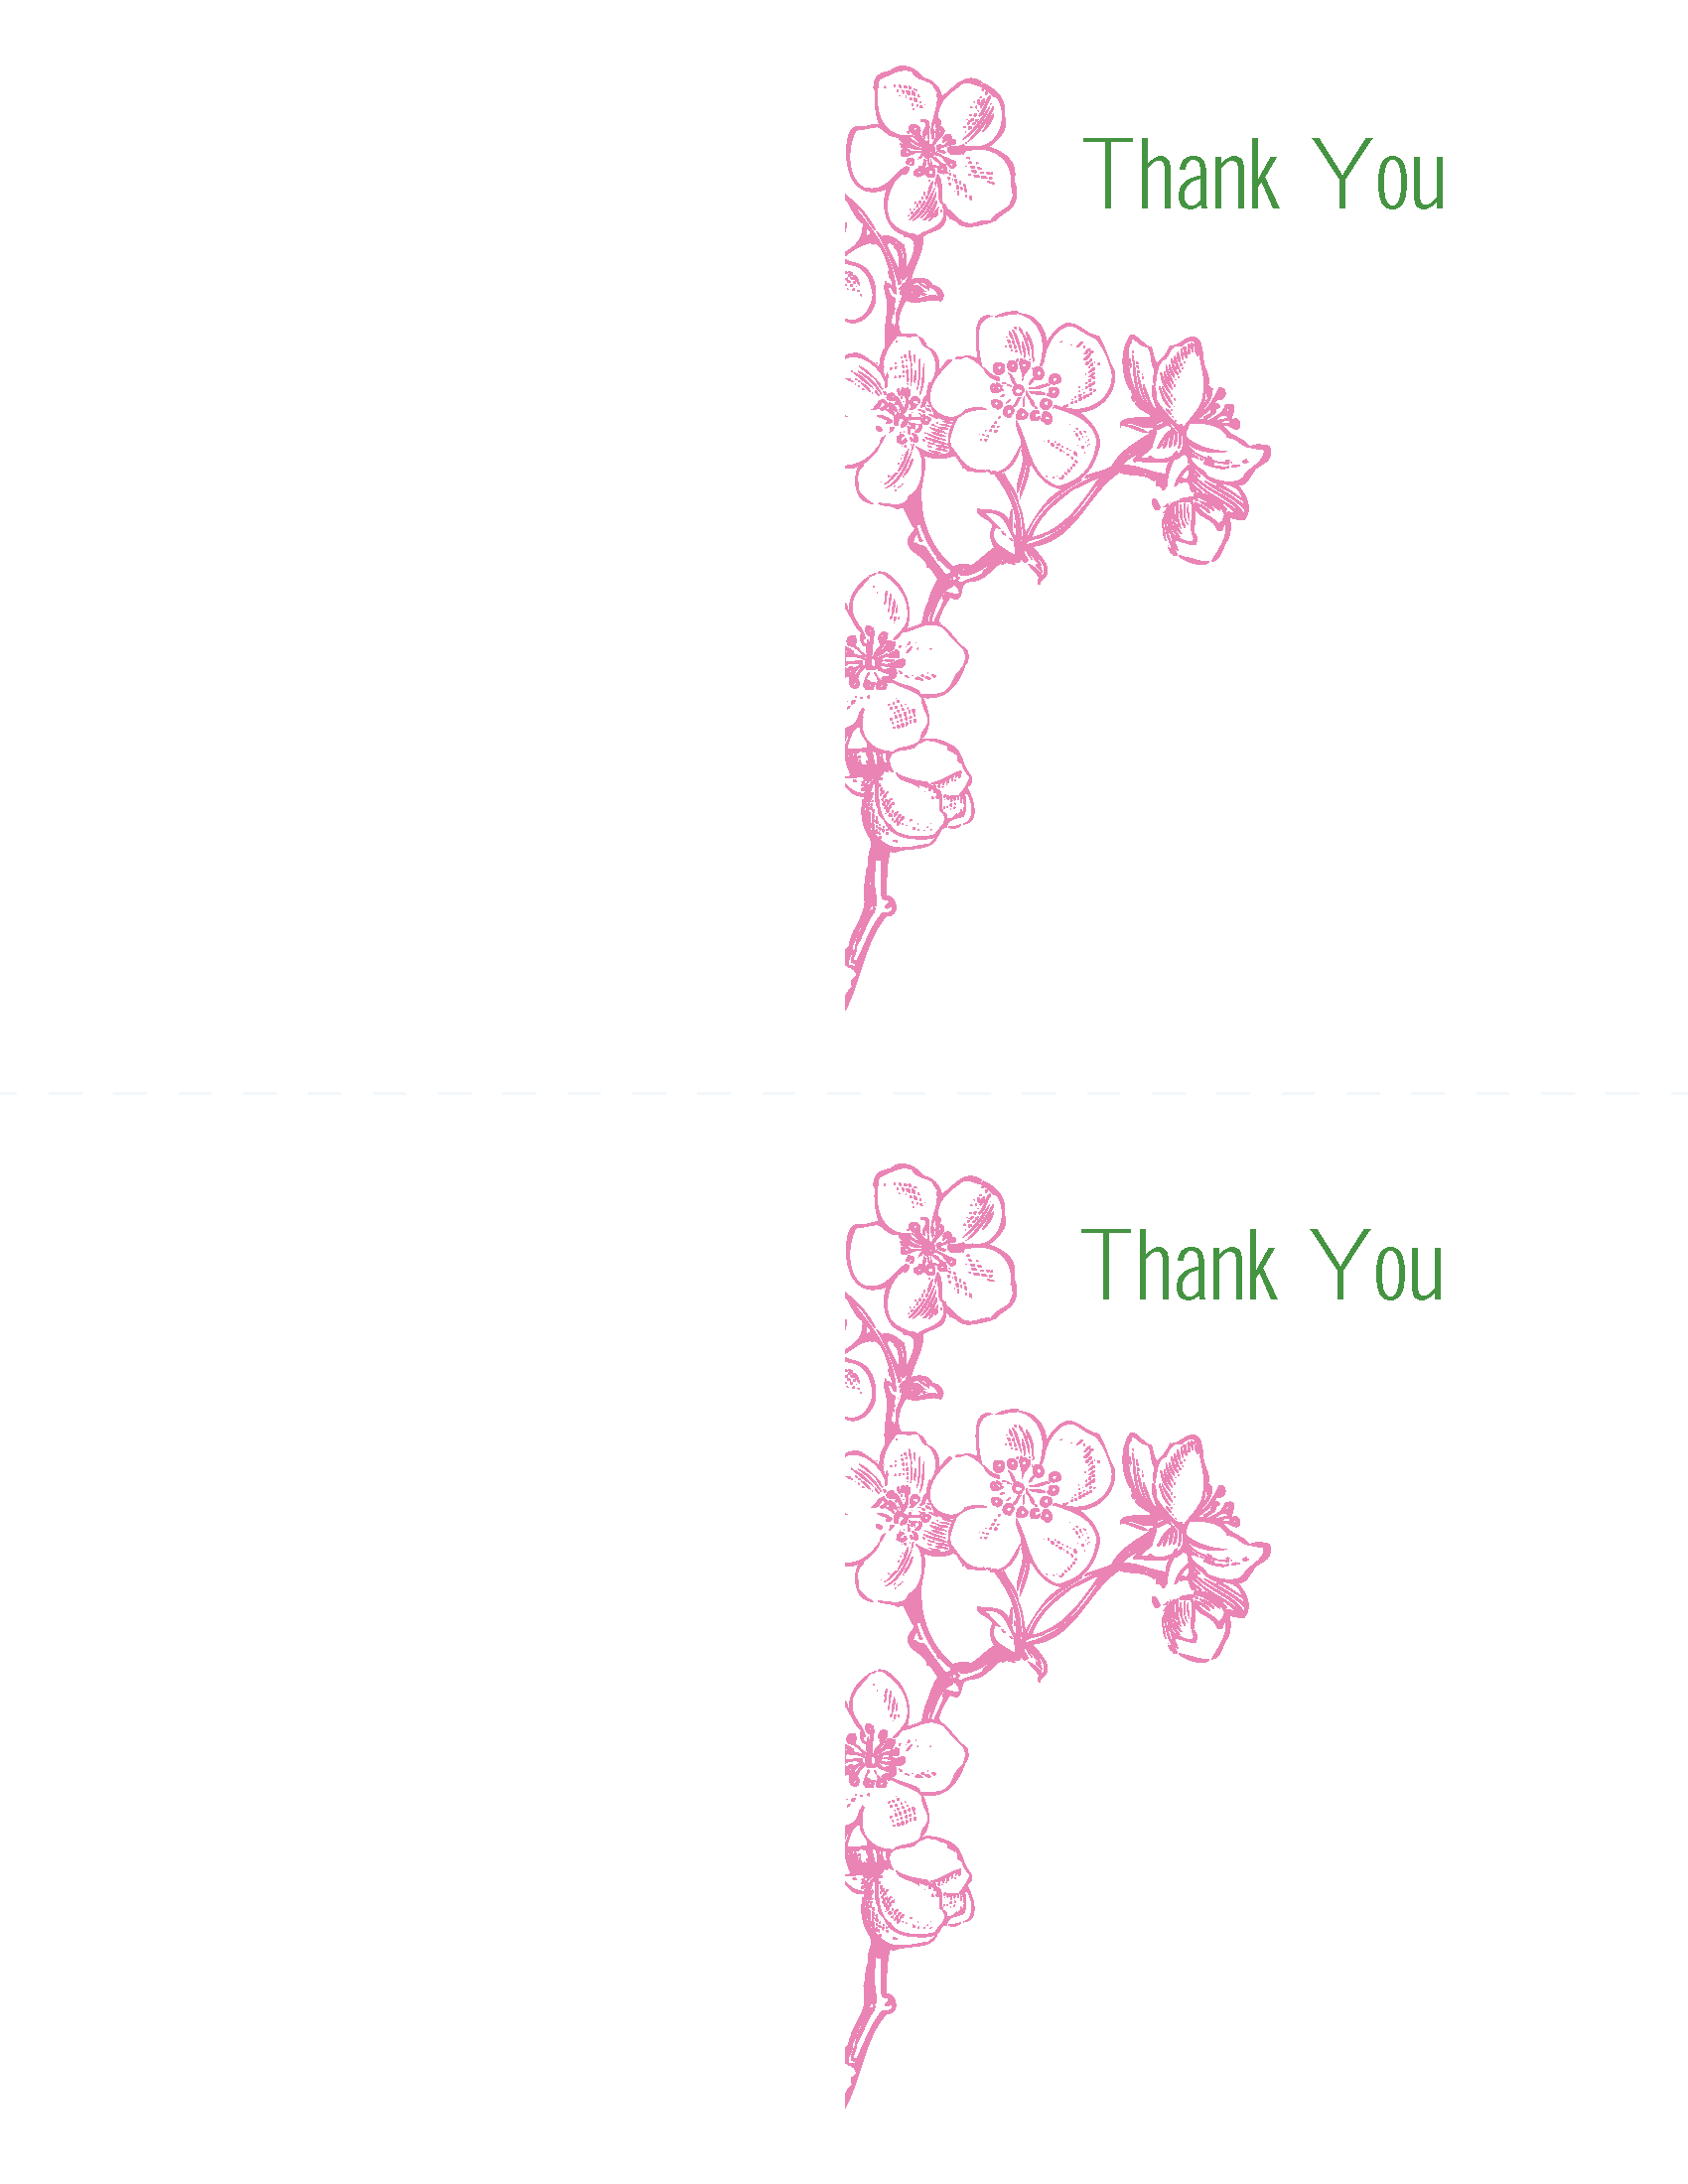 Thank You Cards Vintage Pink Cherry Blossom Invitation Template Kit Printable Kits Include Invites Rsvp's And More: Cherry Blossom Wedding Invitation Kit At Reisefeber.org